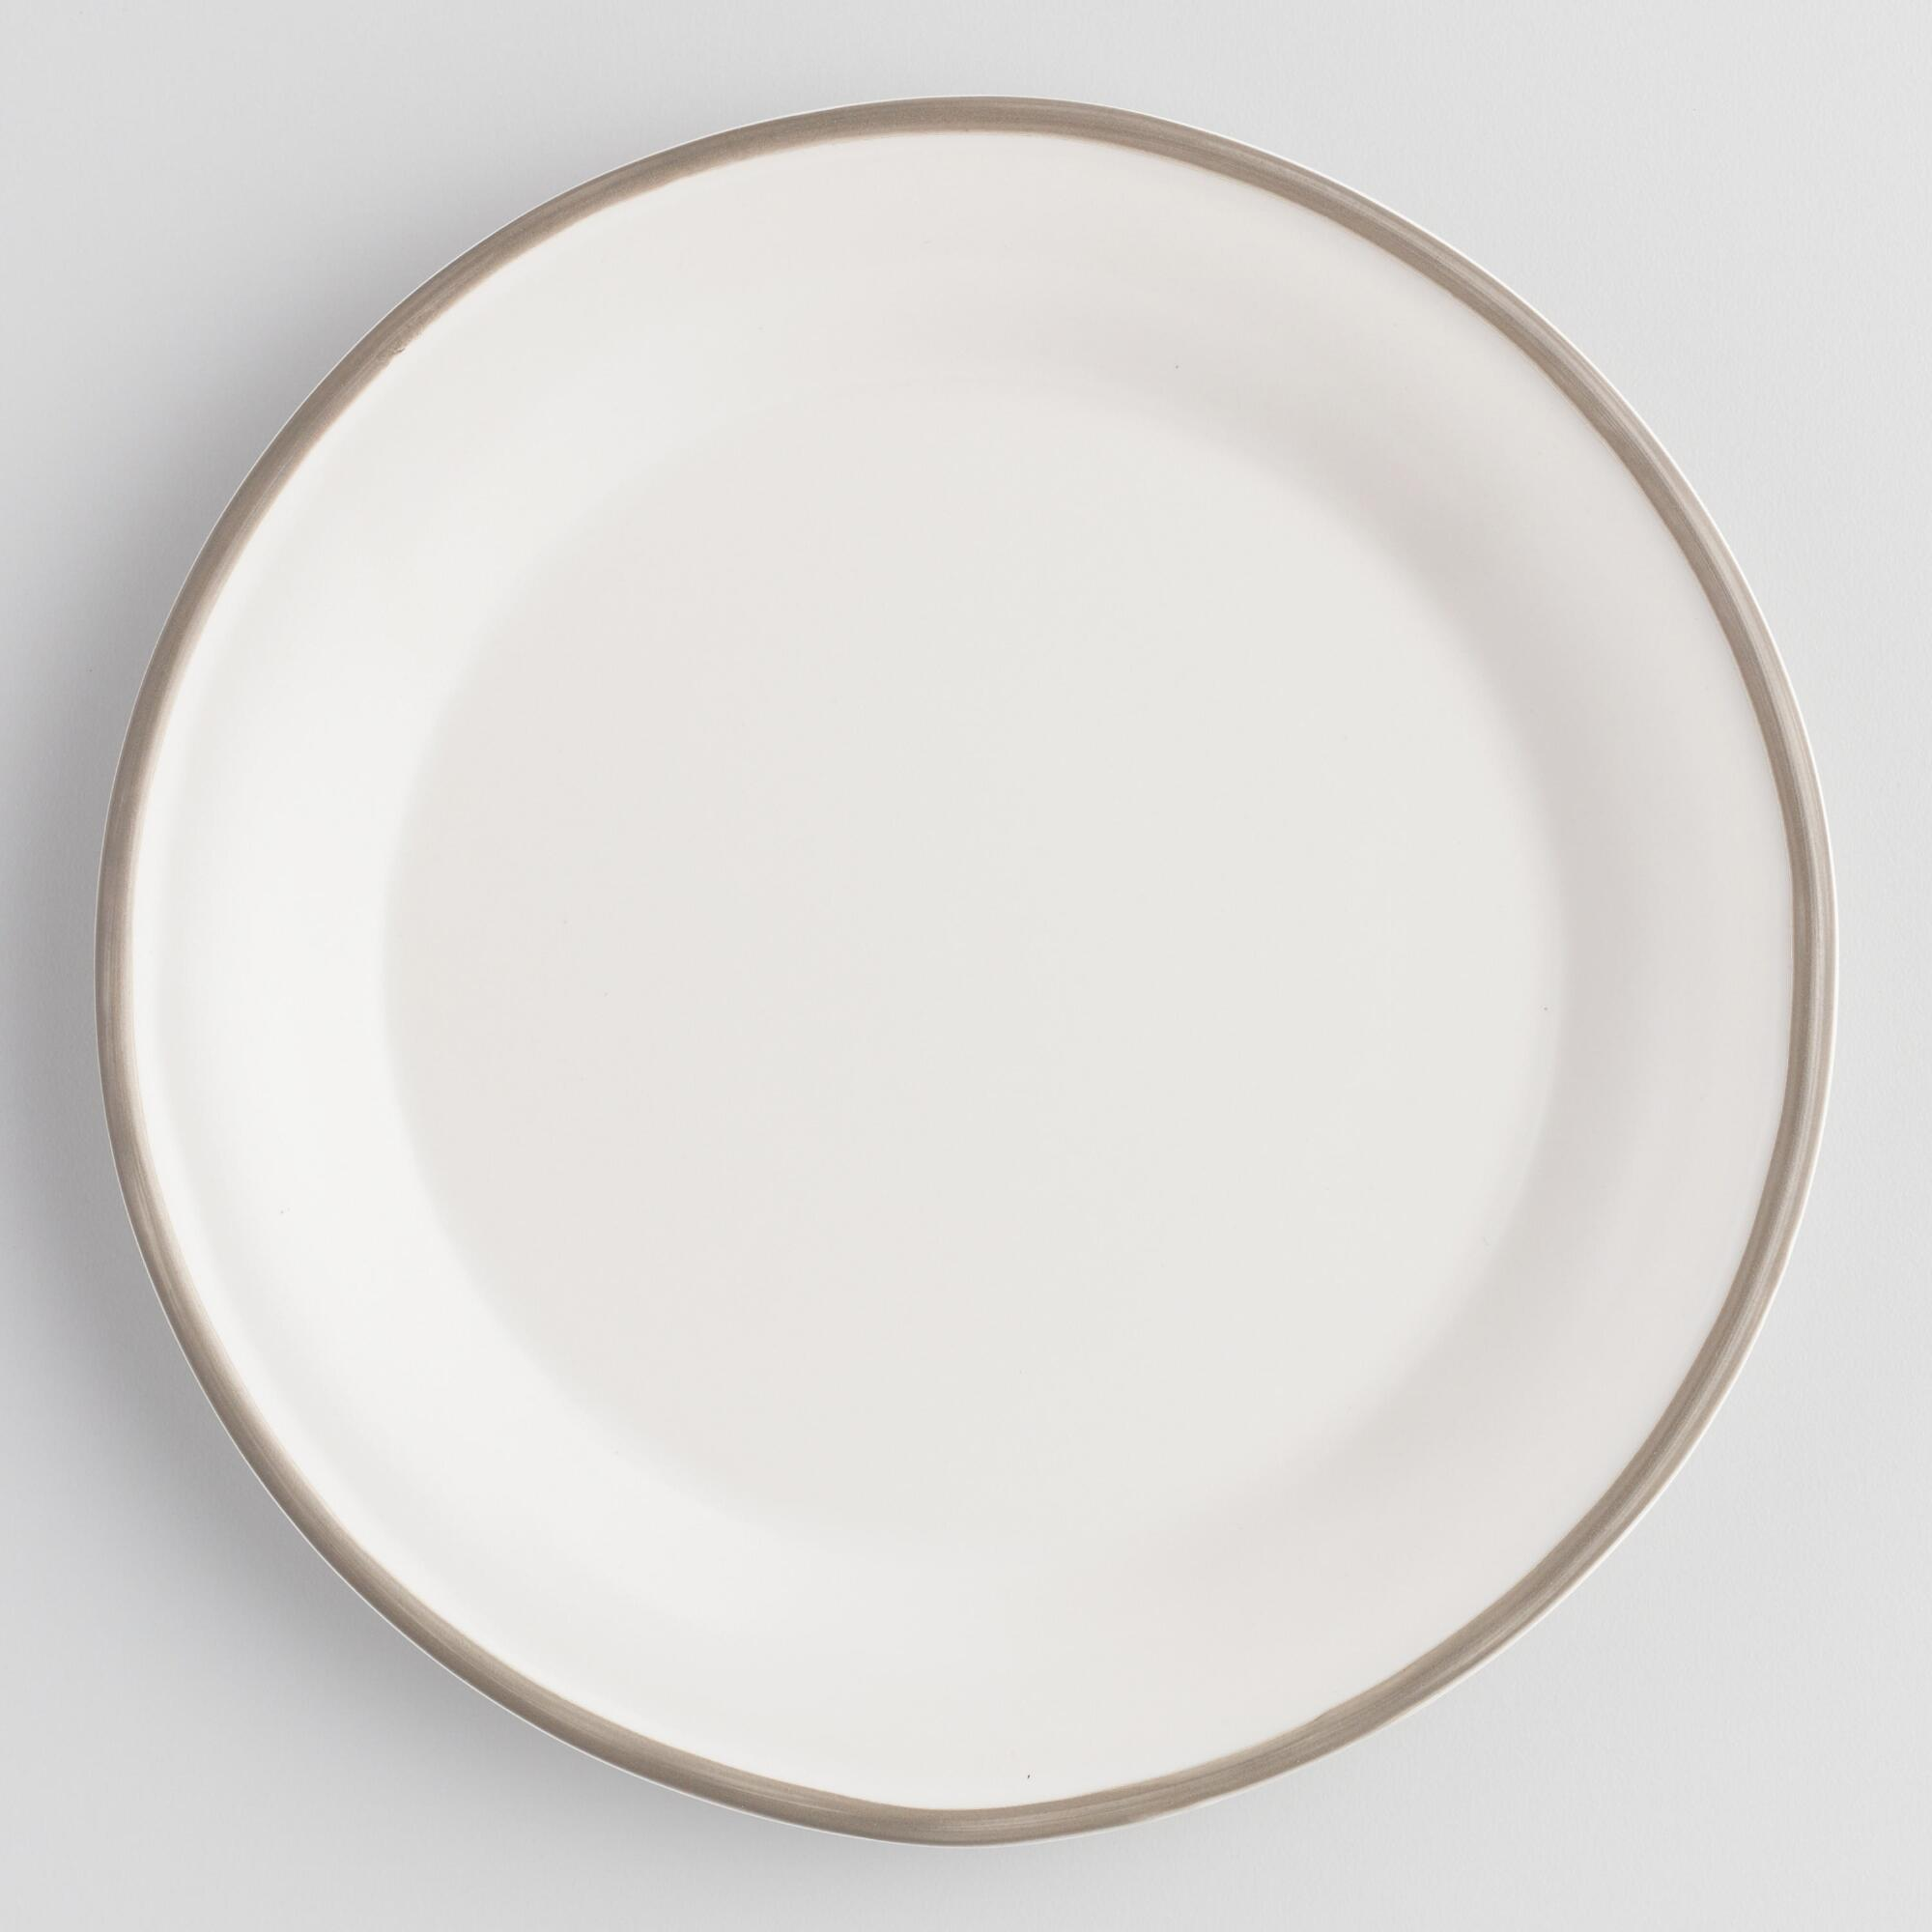 Rustic White And Gray Fatima Salad Plates Set Of 4 by World Market